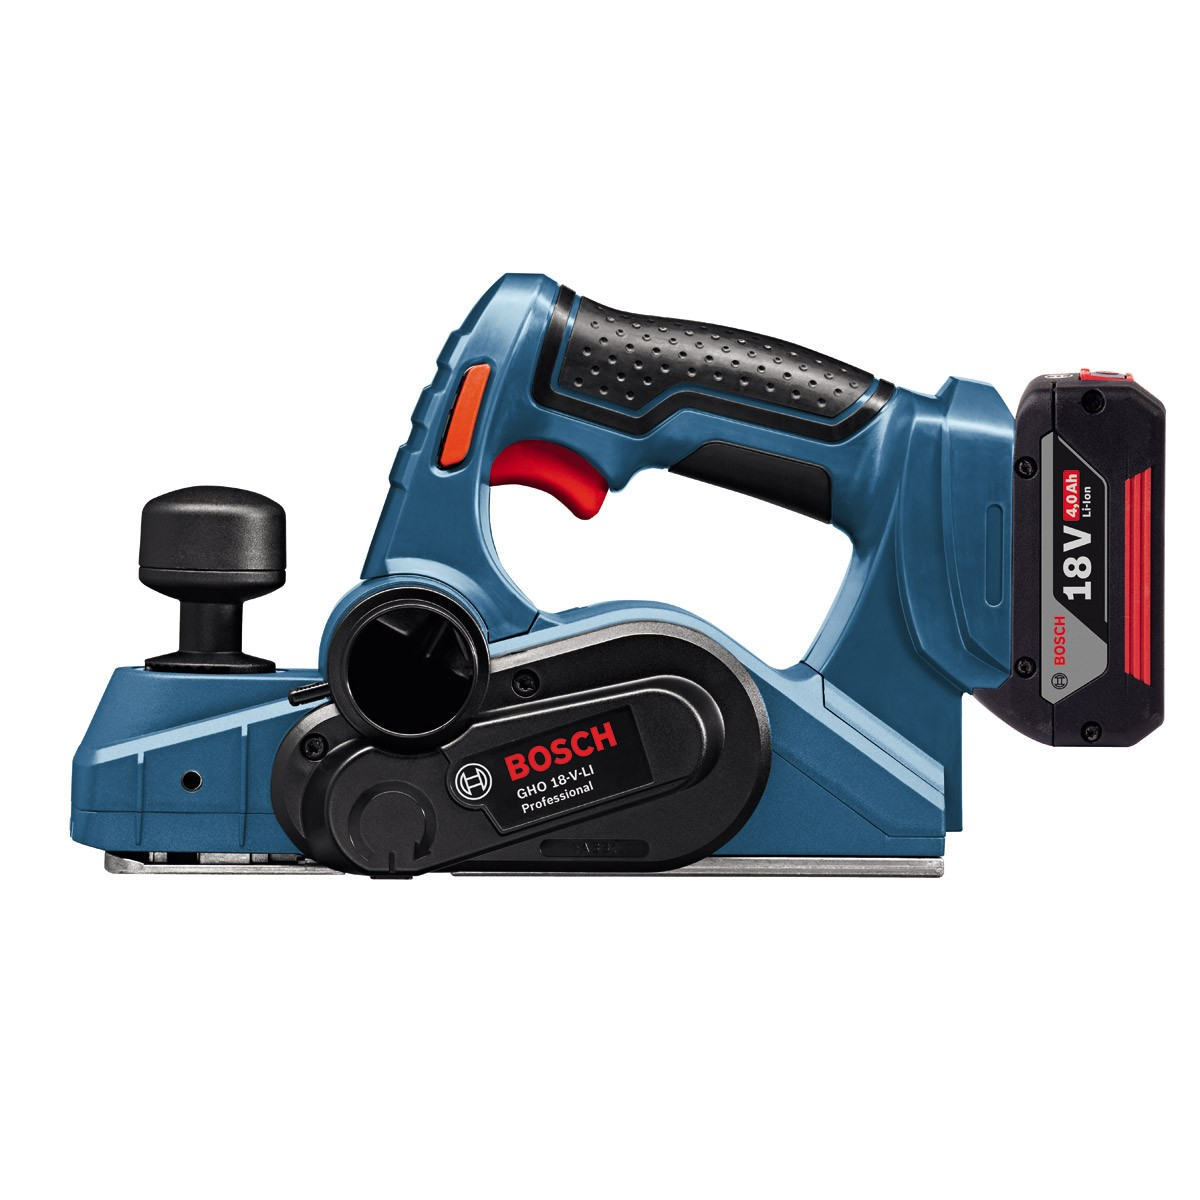 bosch gho 18 v li professional cordless planer inc 2x 4 0ah batteries al 1860 cv charger and l. Black Bedroom Furniture Sets. Home Design Ideas